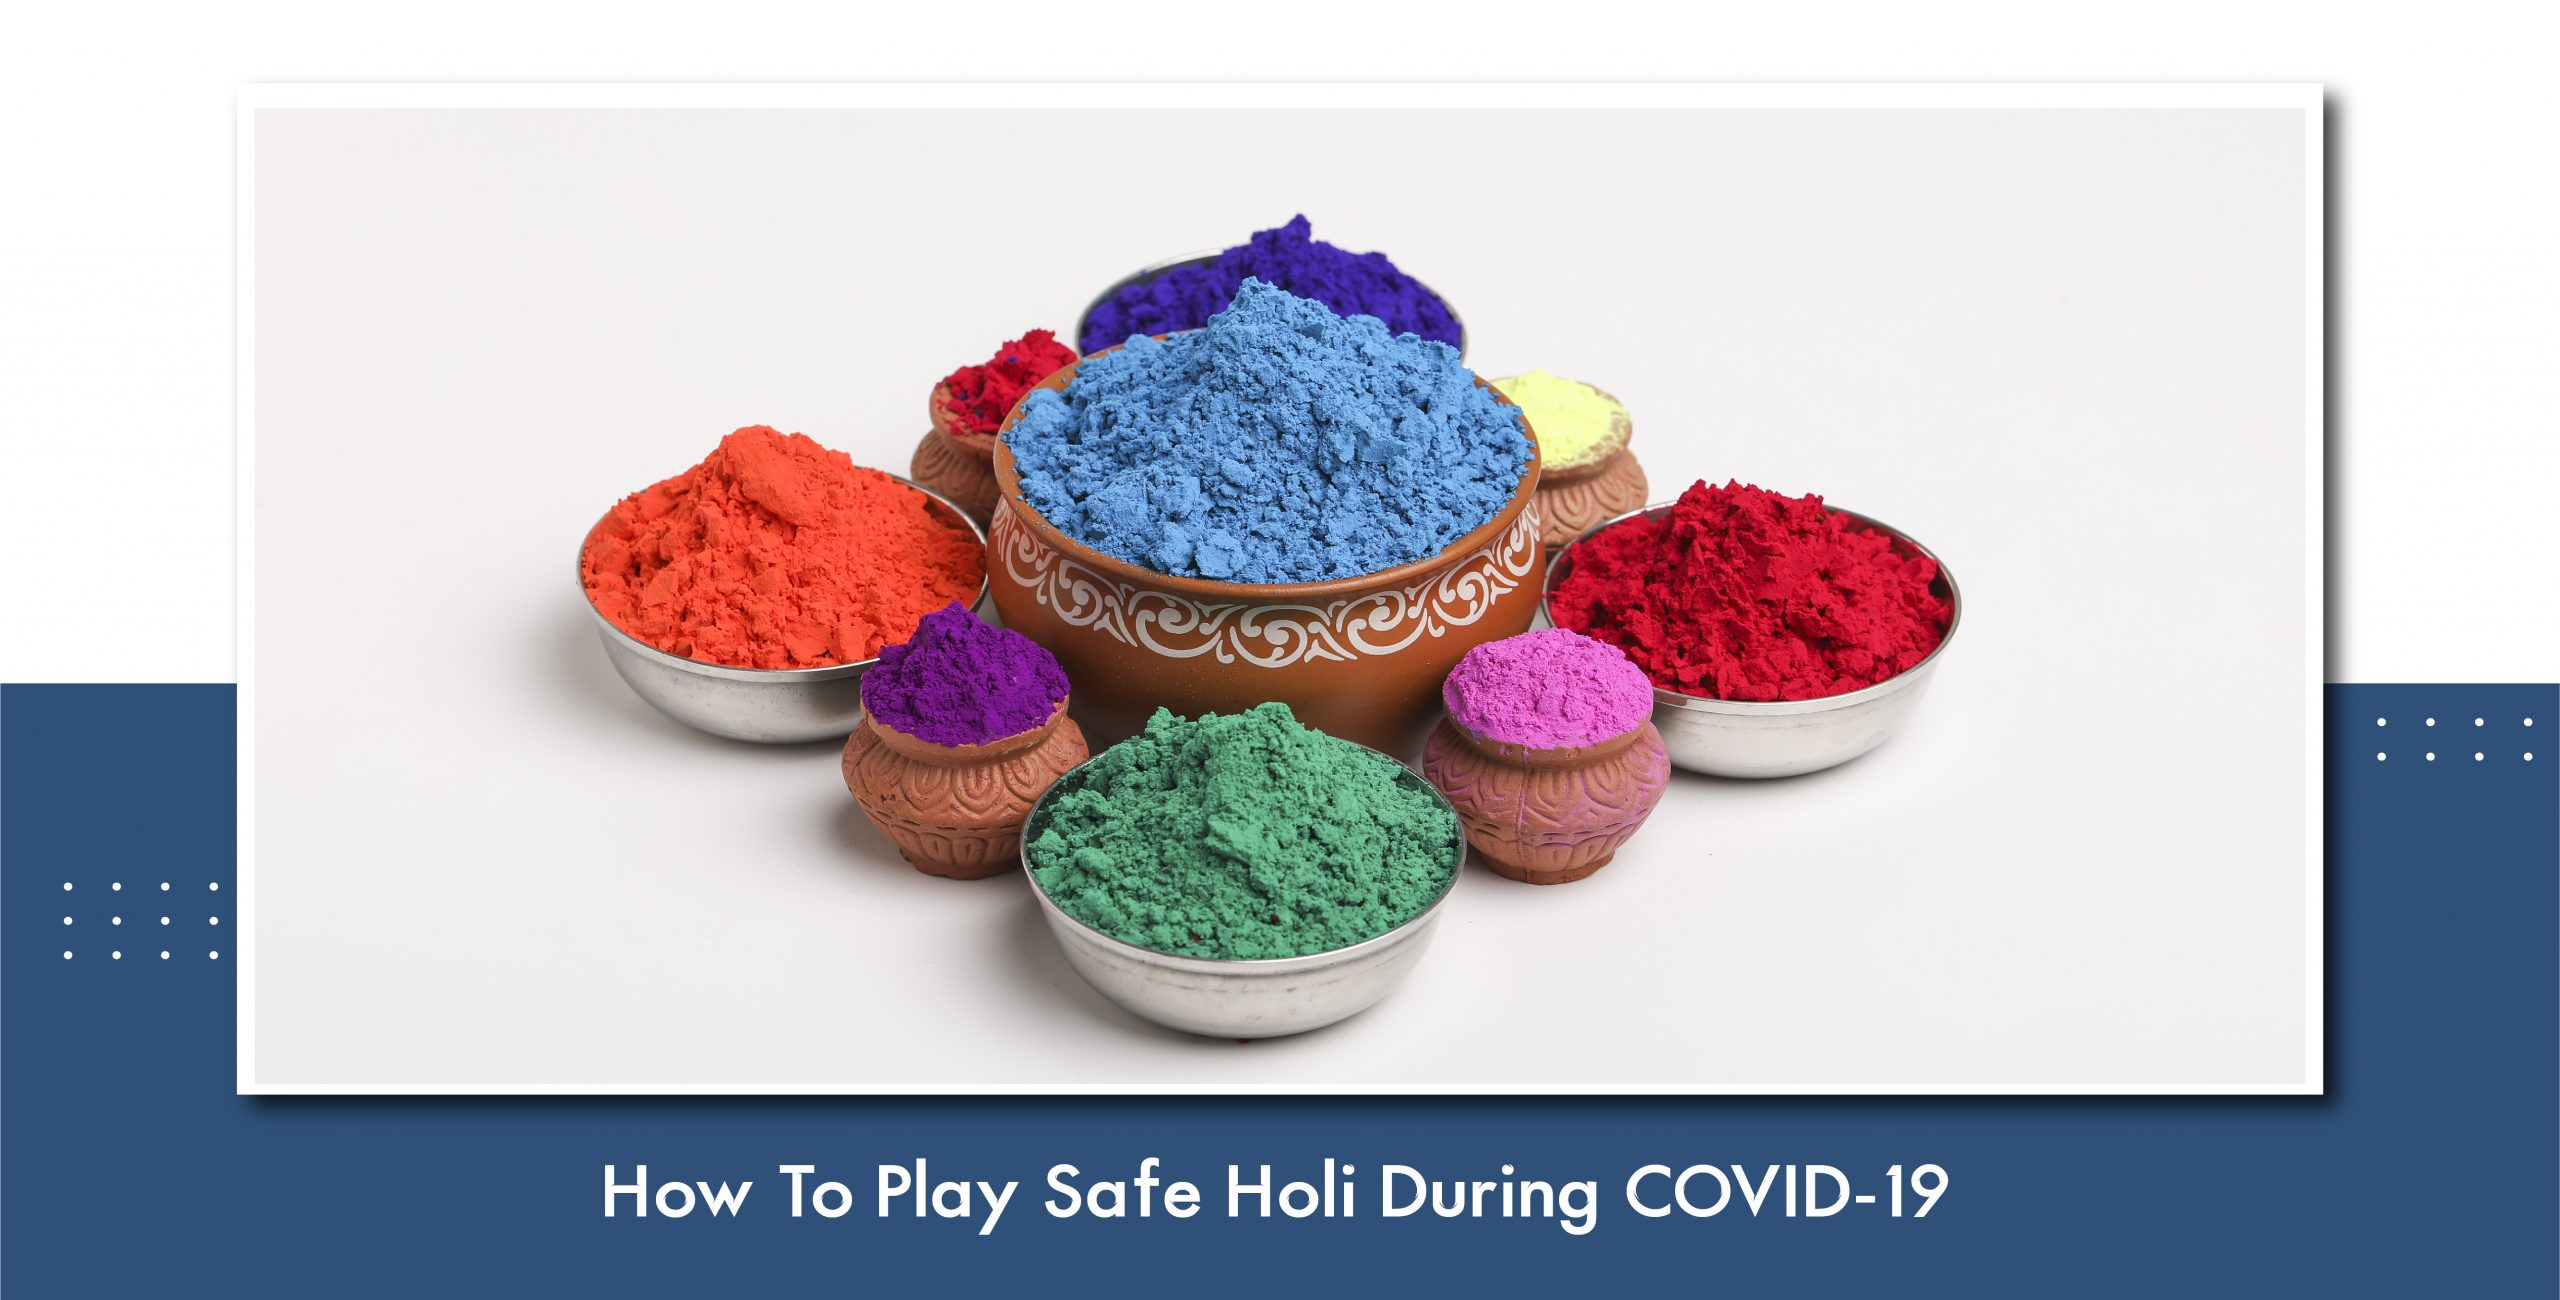 How To Play Safe Holi During COVID-19